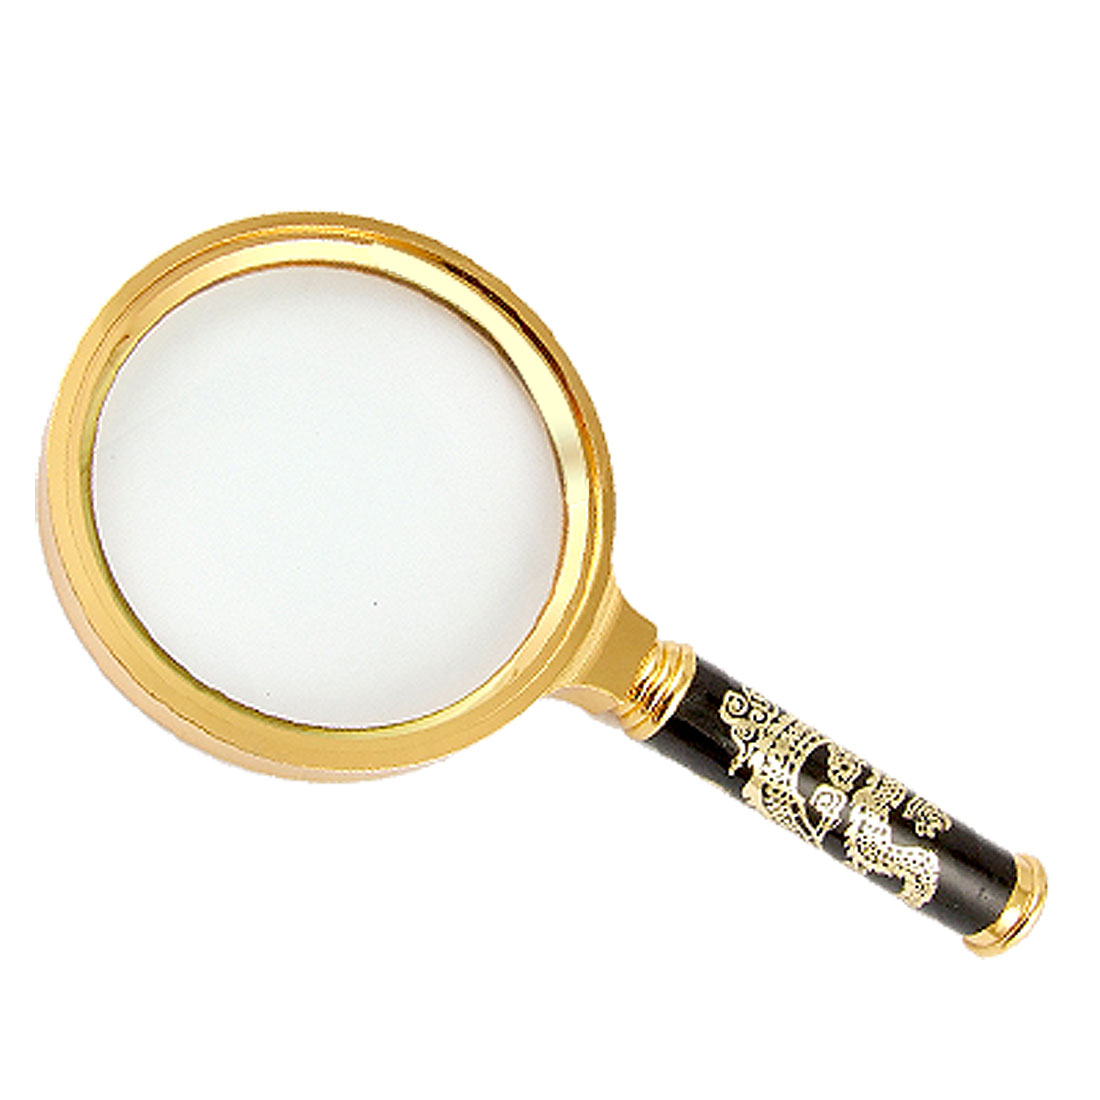 Gold Tone Dragon Pattern Metal Handle Hand Held 5X Magnifying Glass